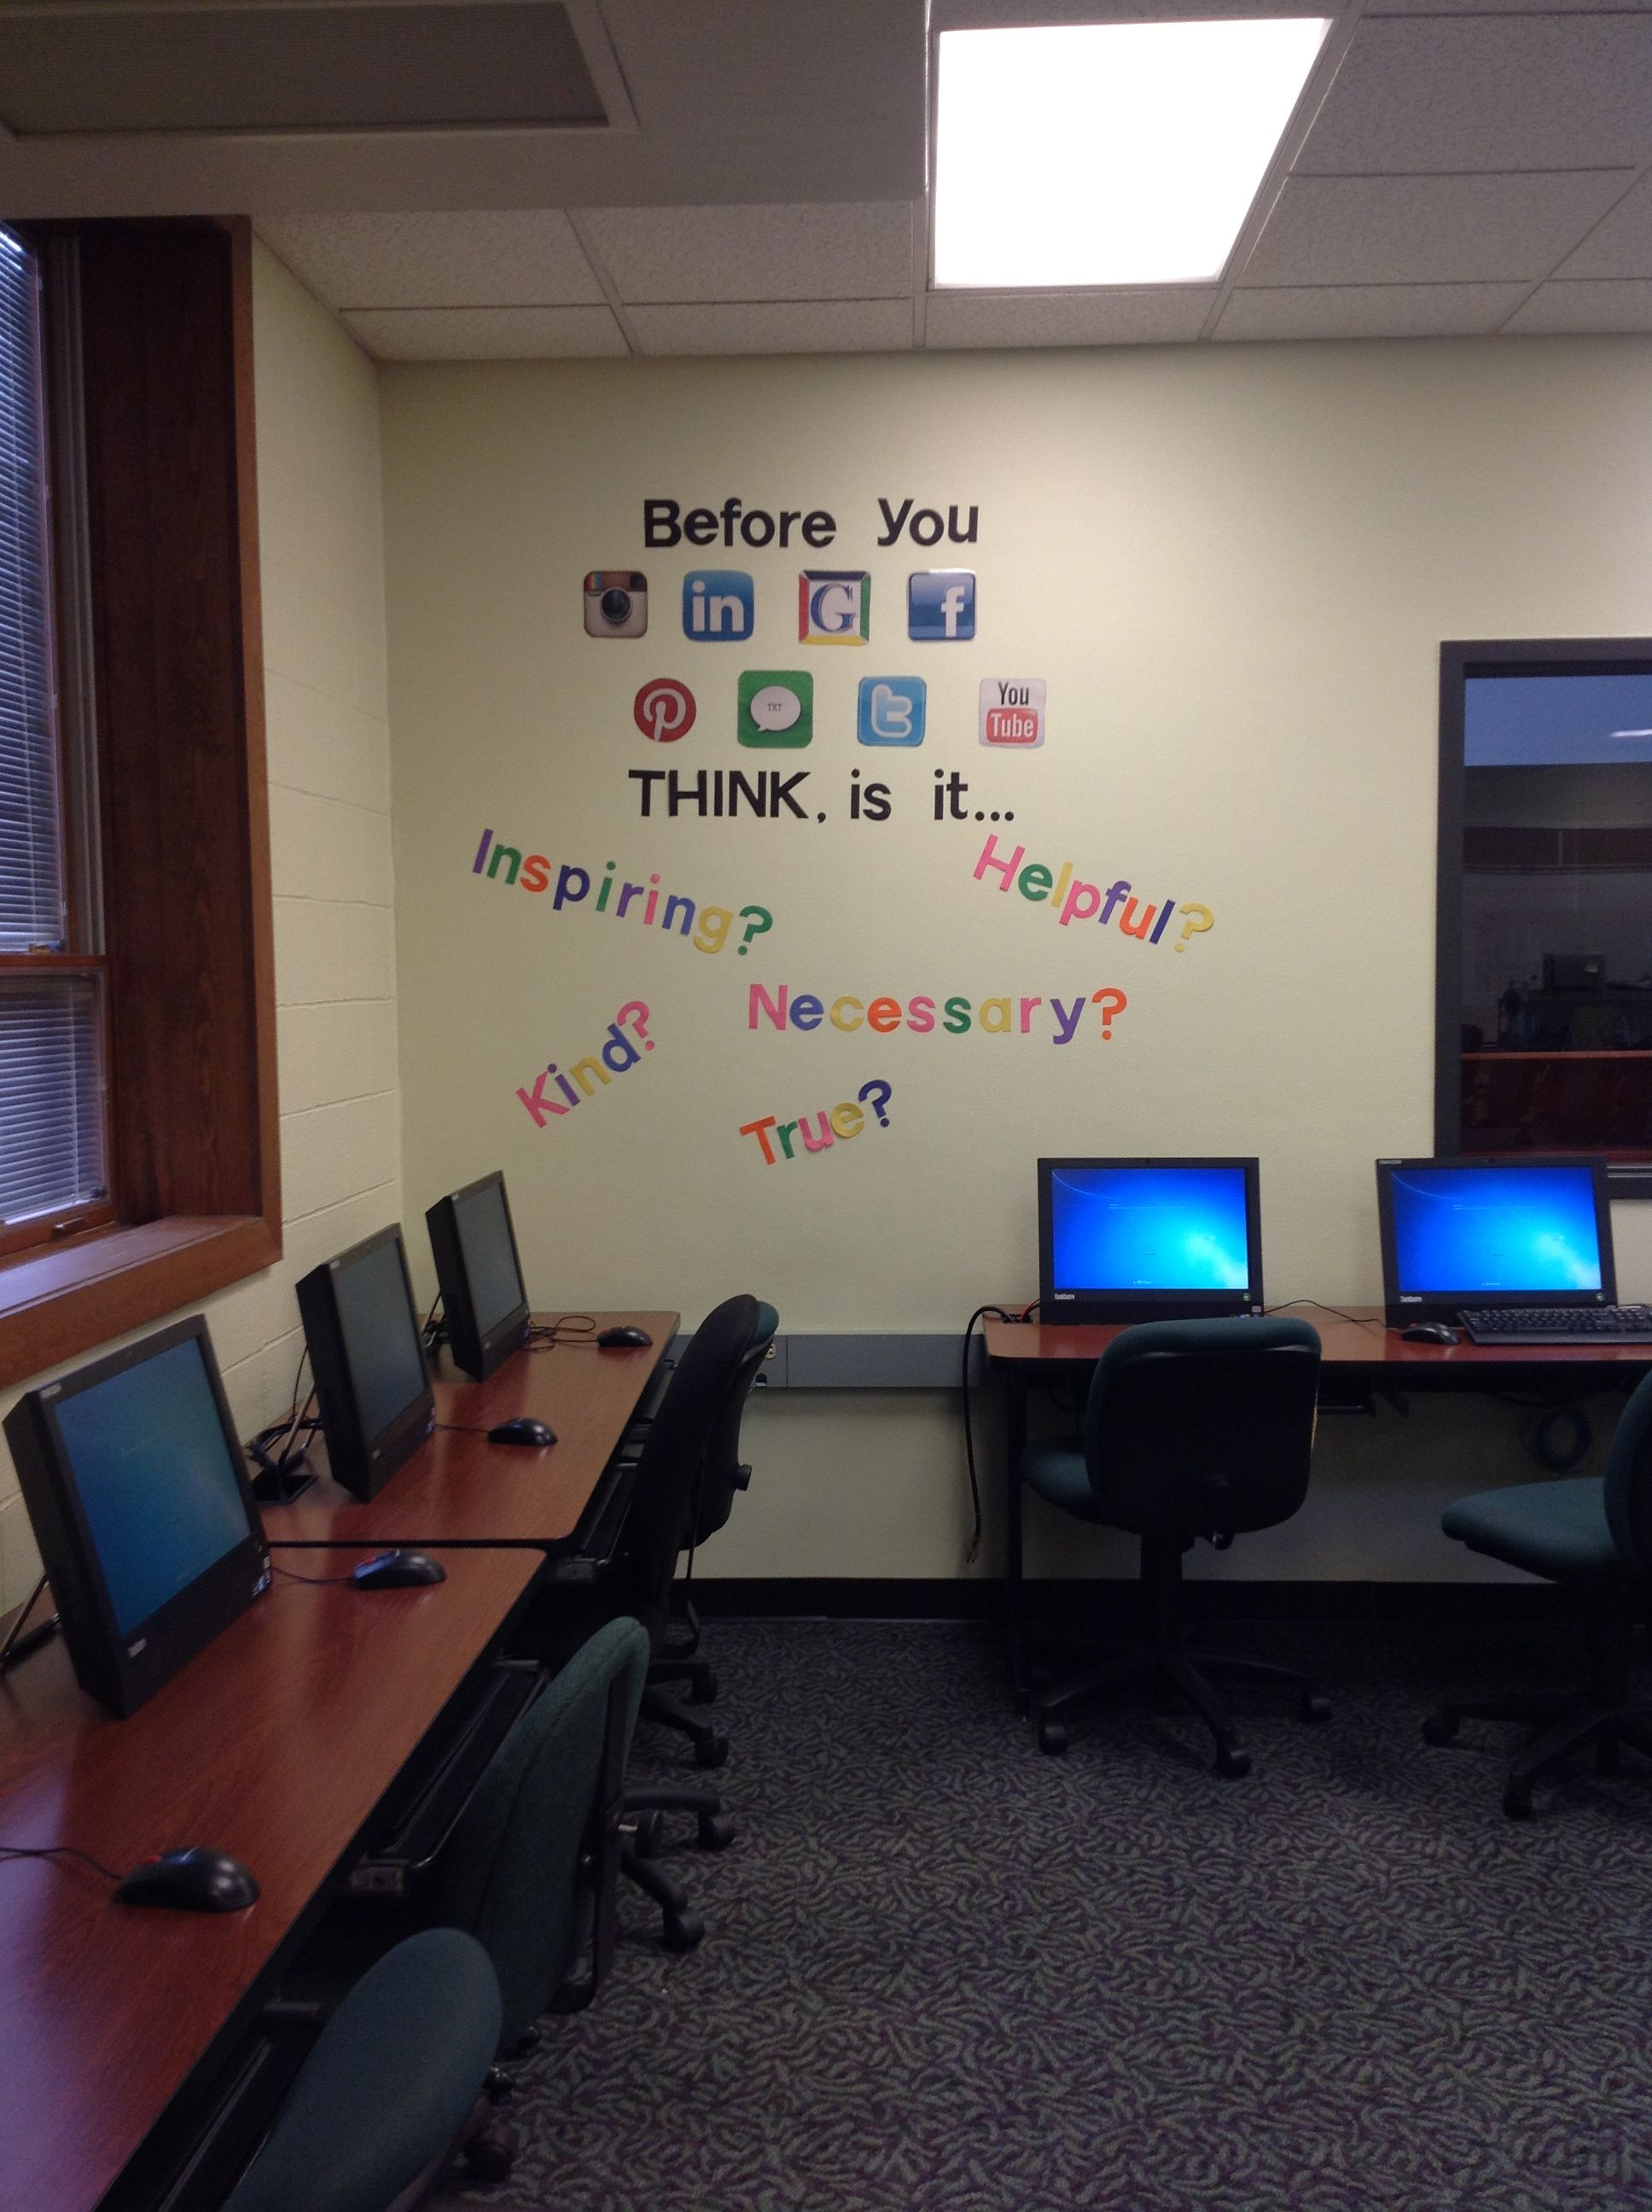 My Bulletin Board For My Computer Lab Before You Use